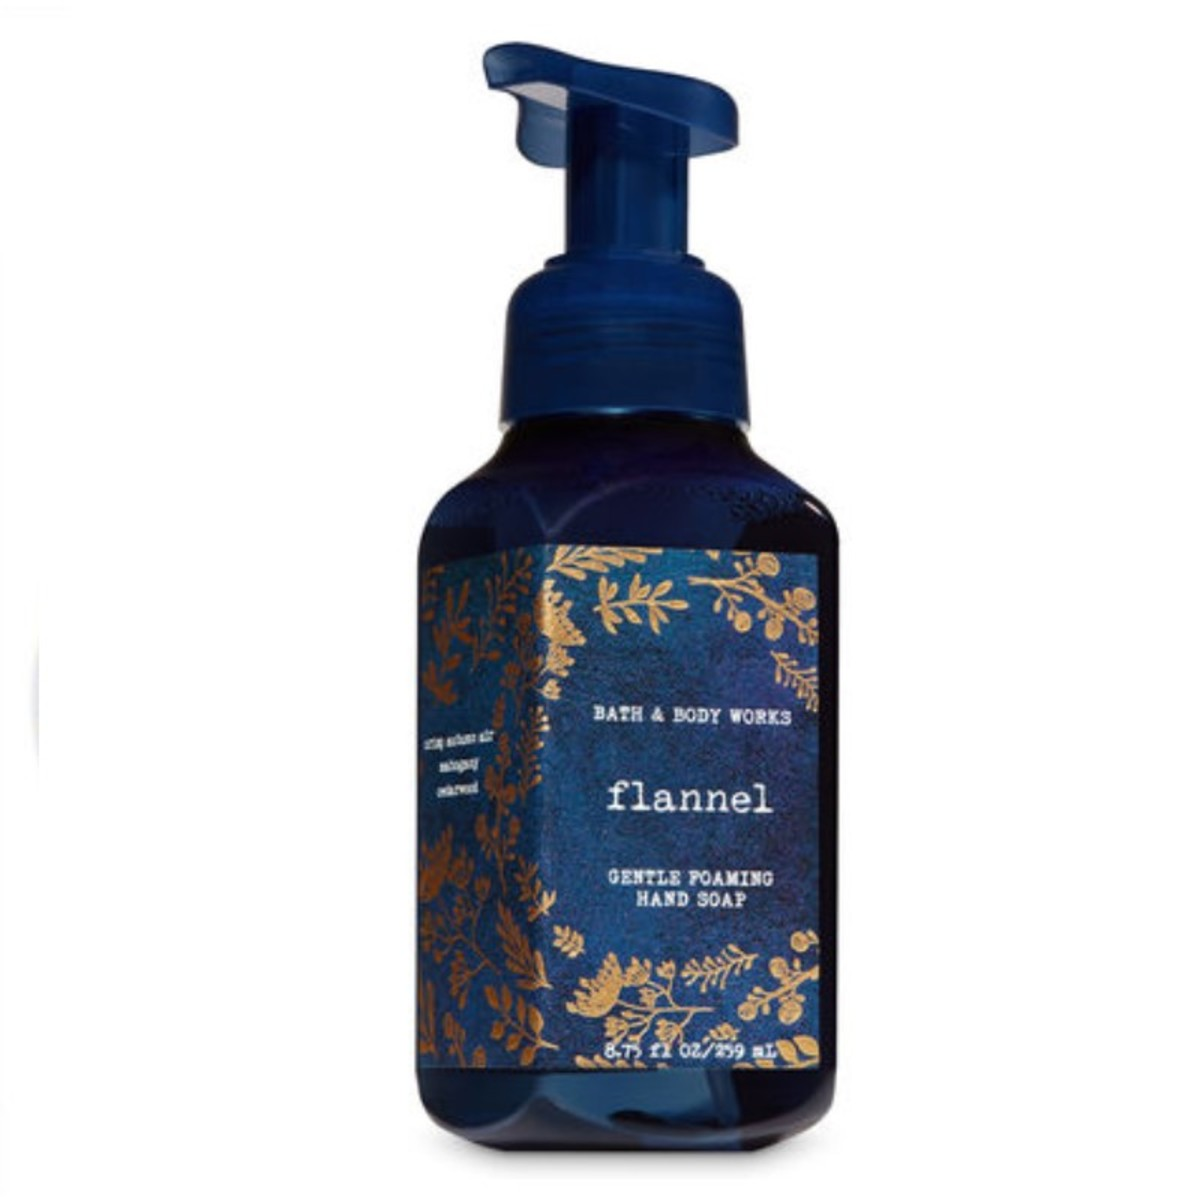 Flannel Gentle Foaming Hand Soap(Parallel Imports Product)